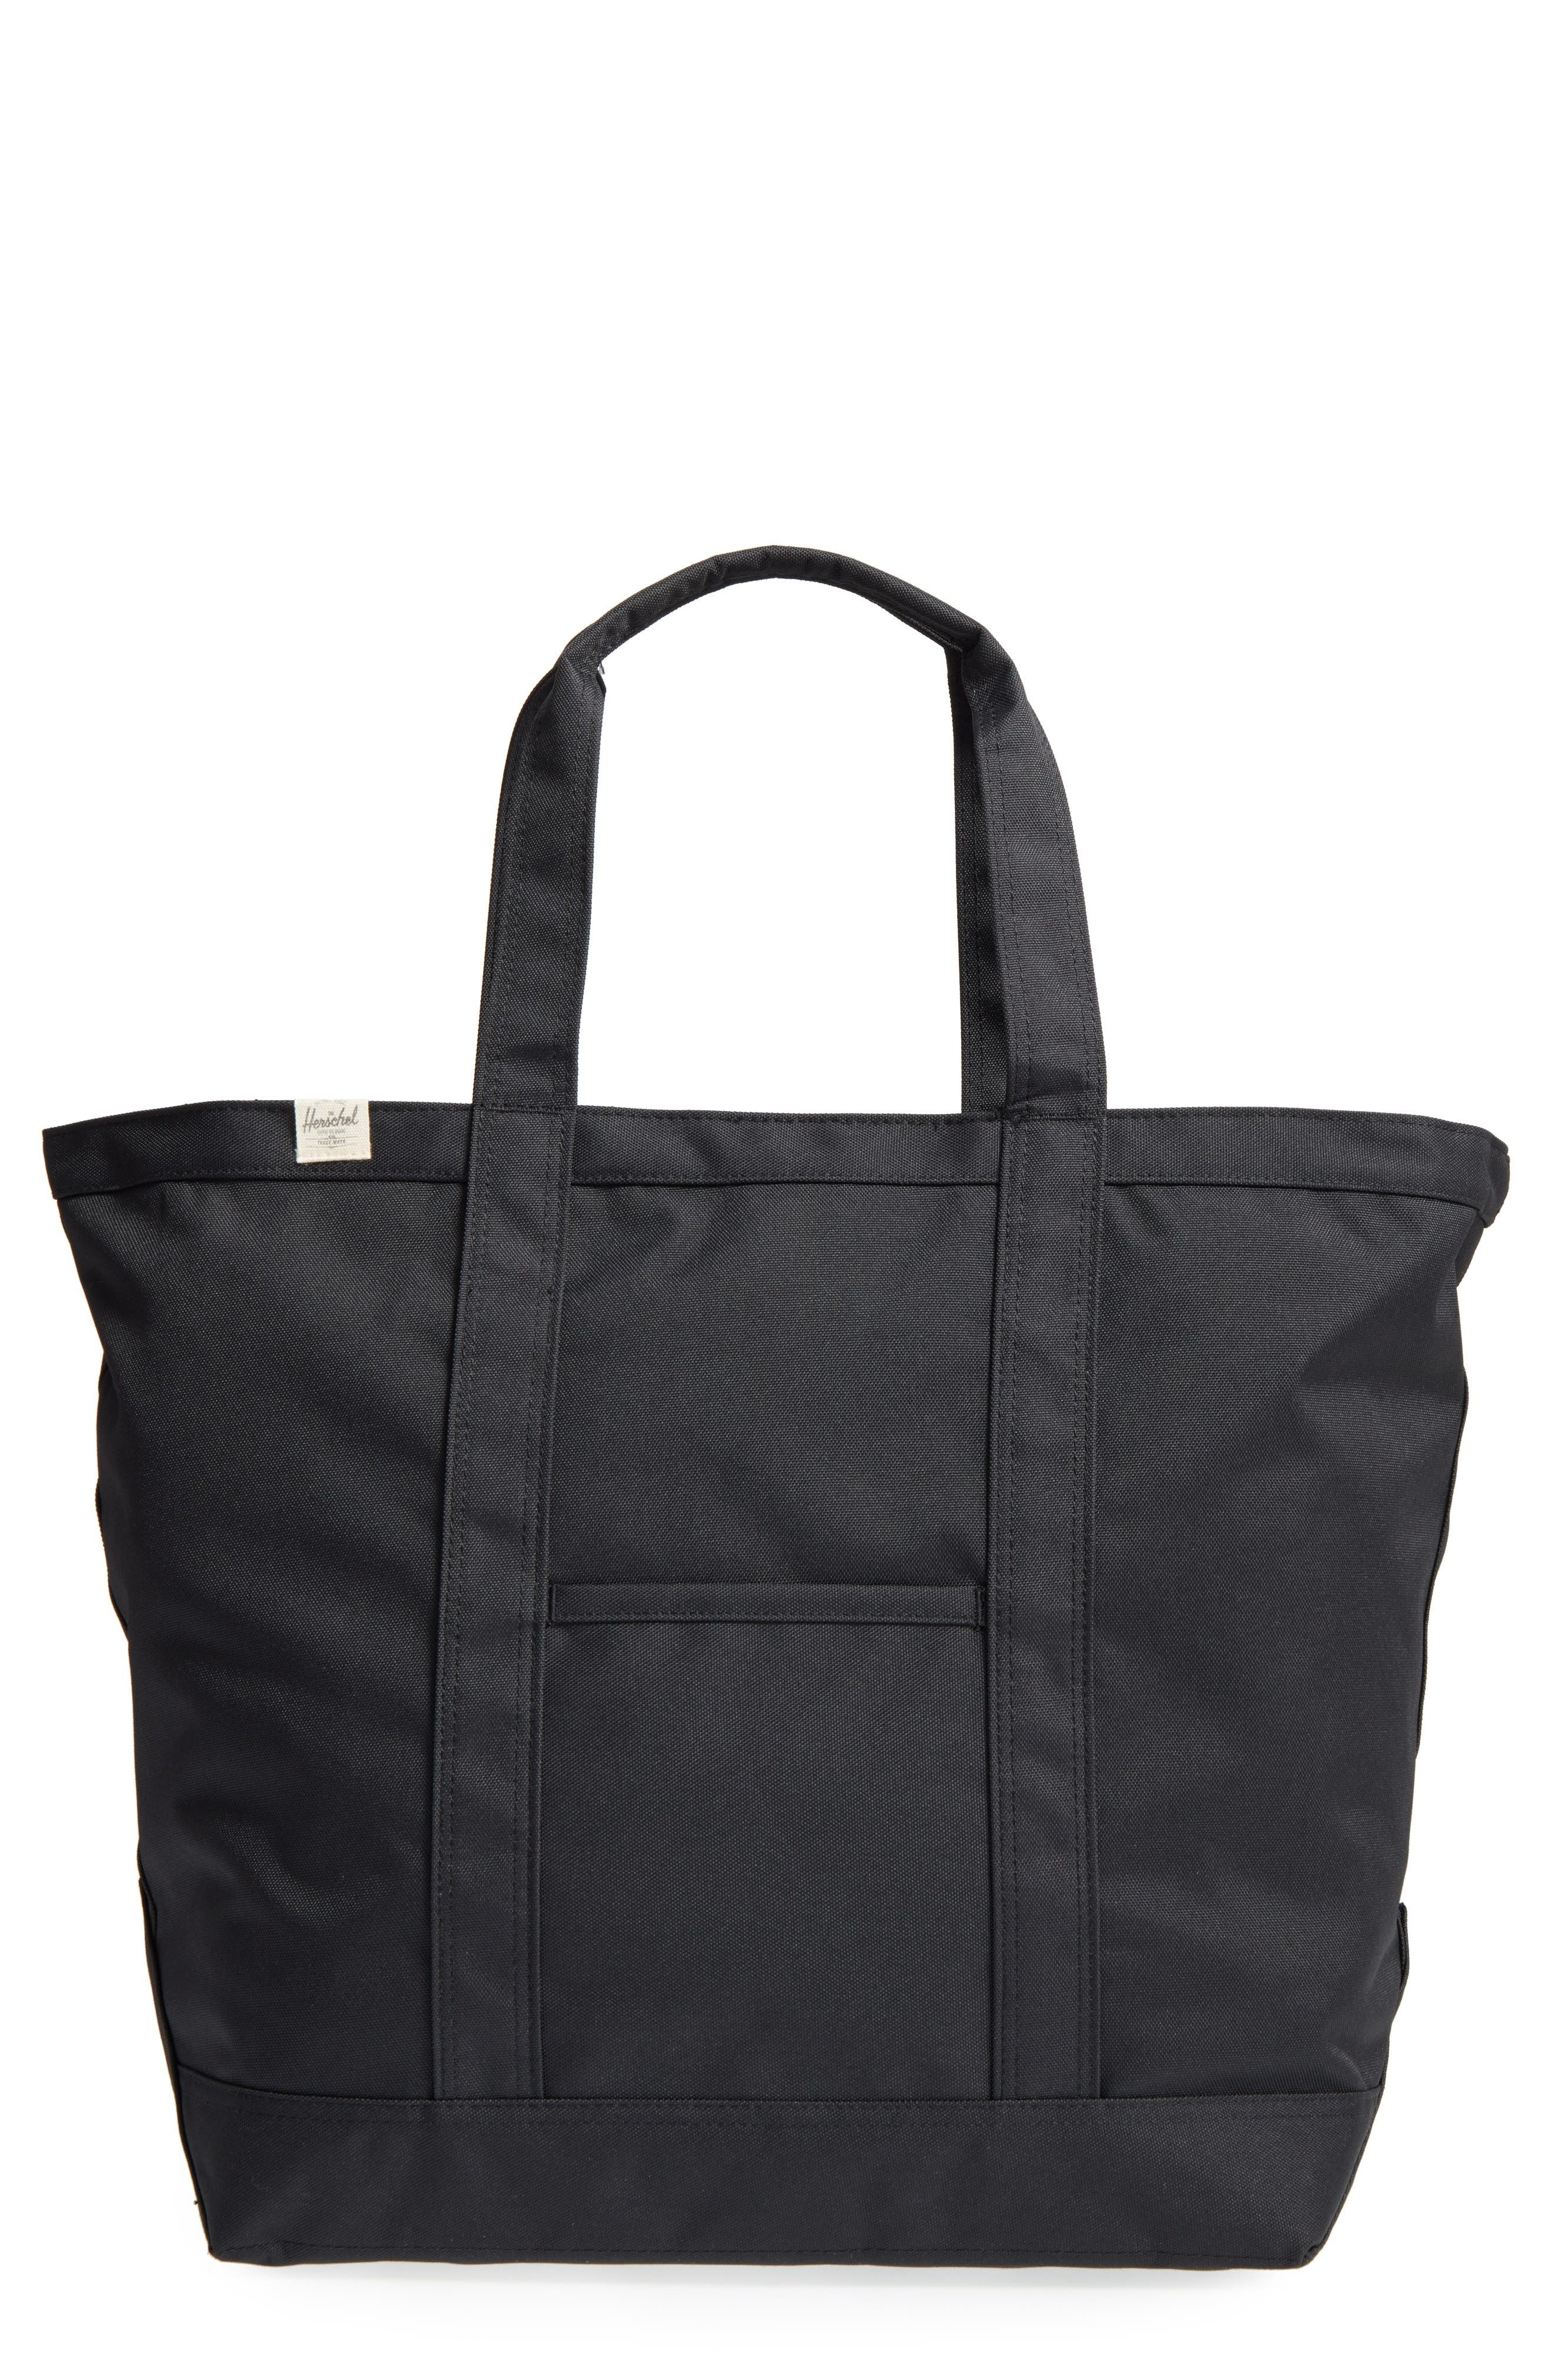 Herschel Supply Co. Bamfield Mid-Volume Tote Bag